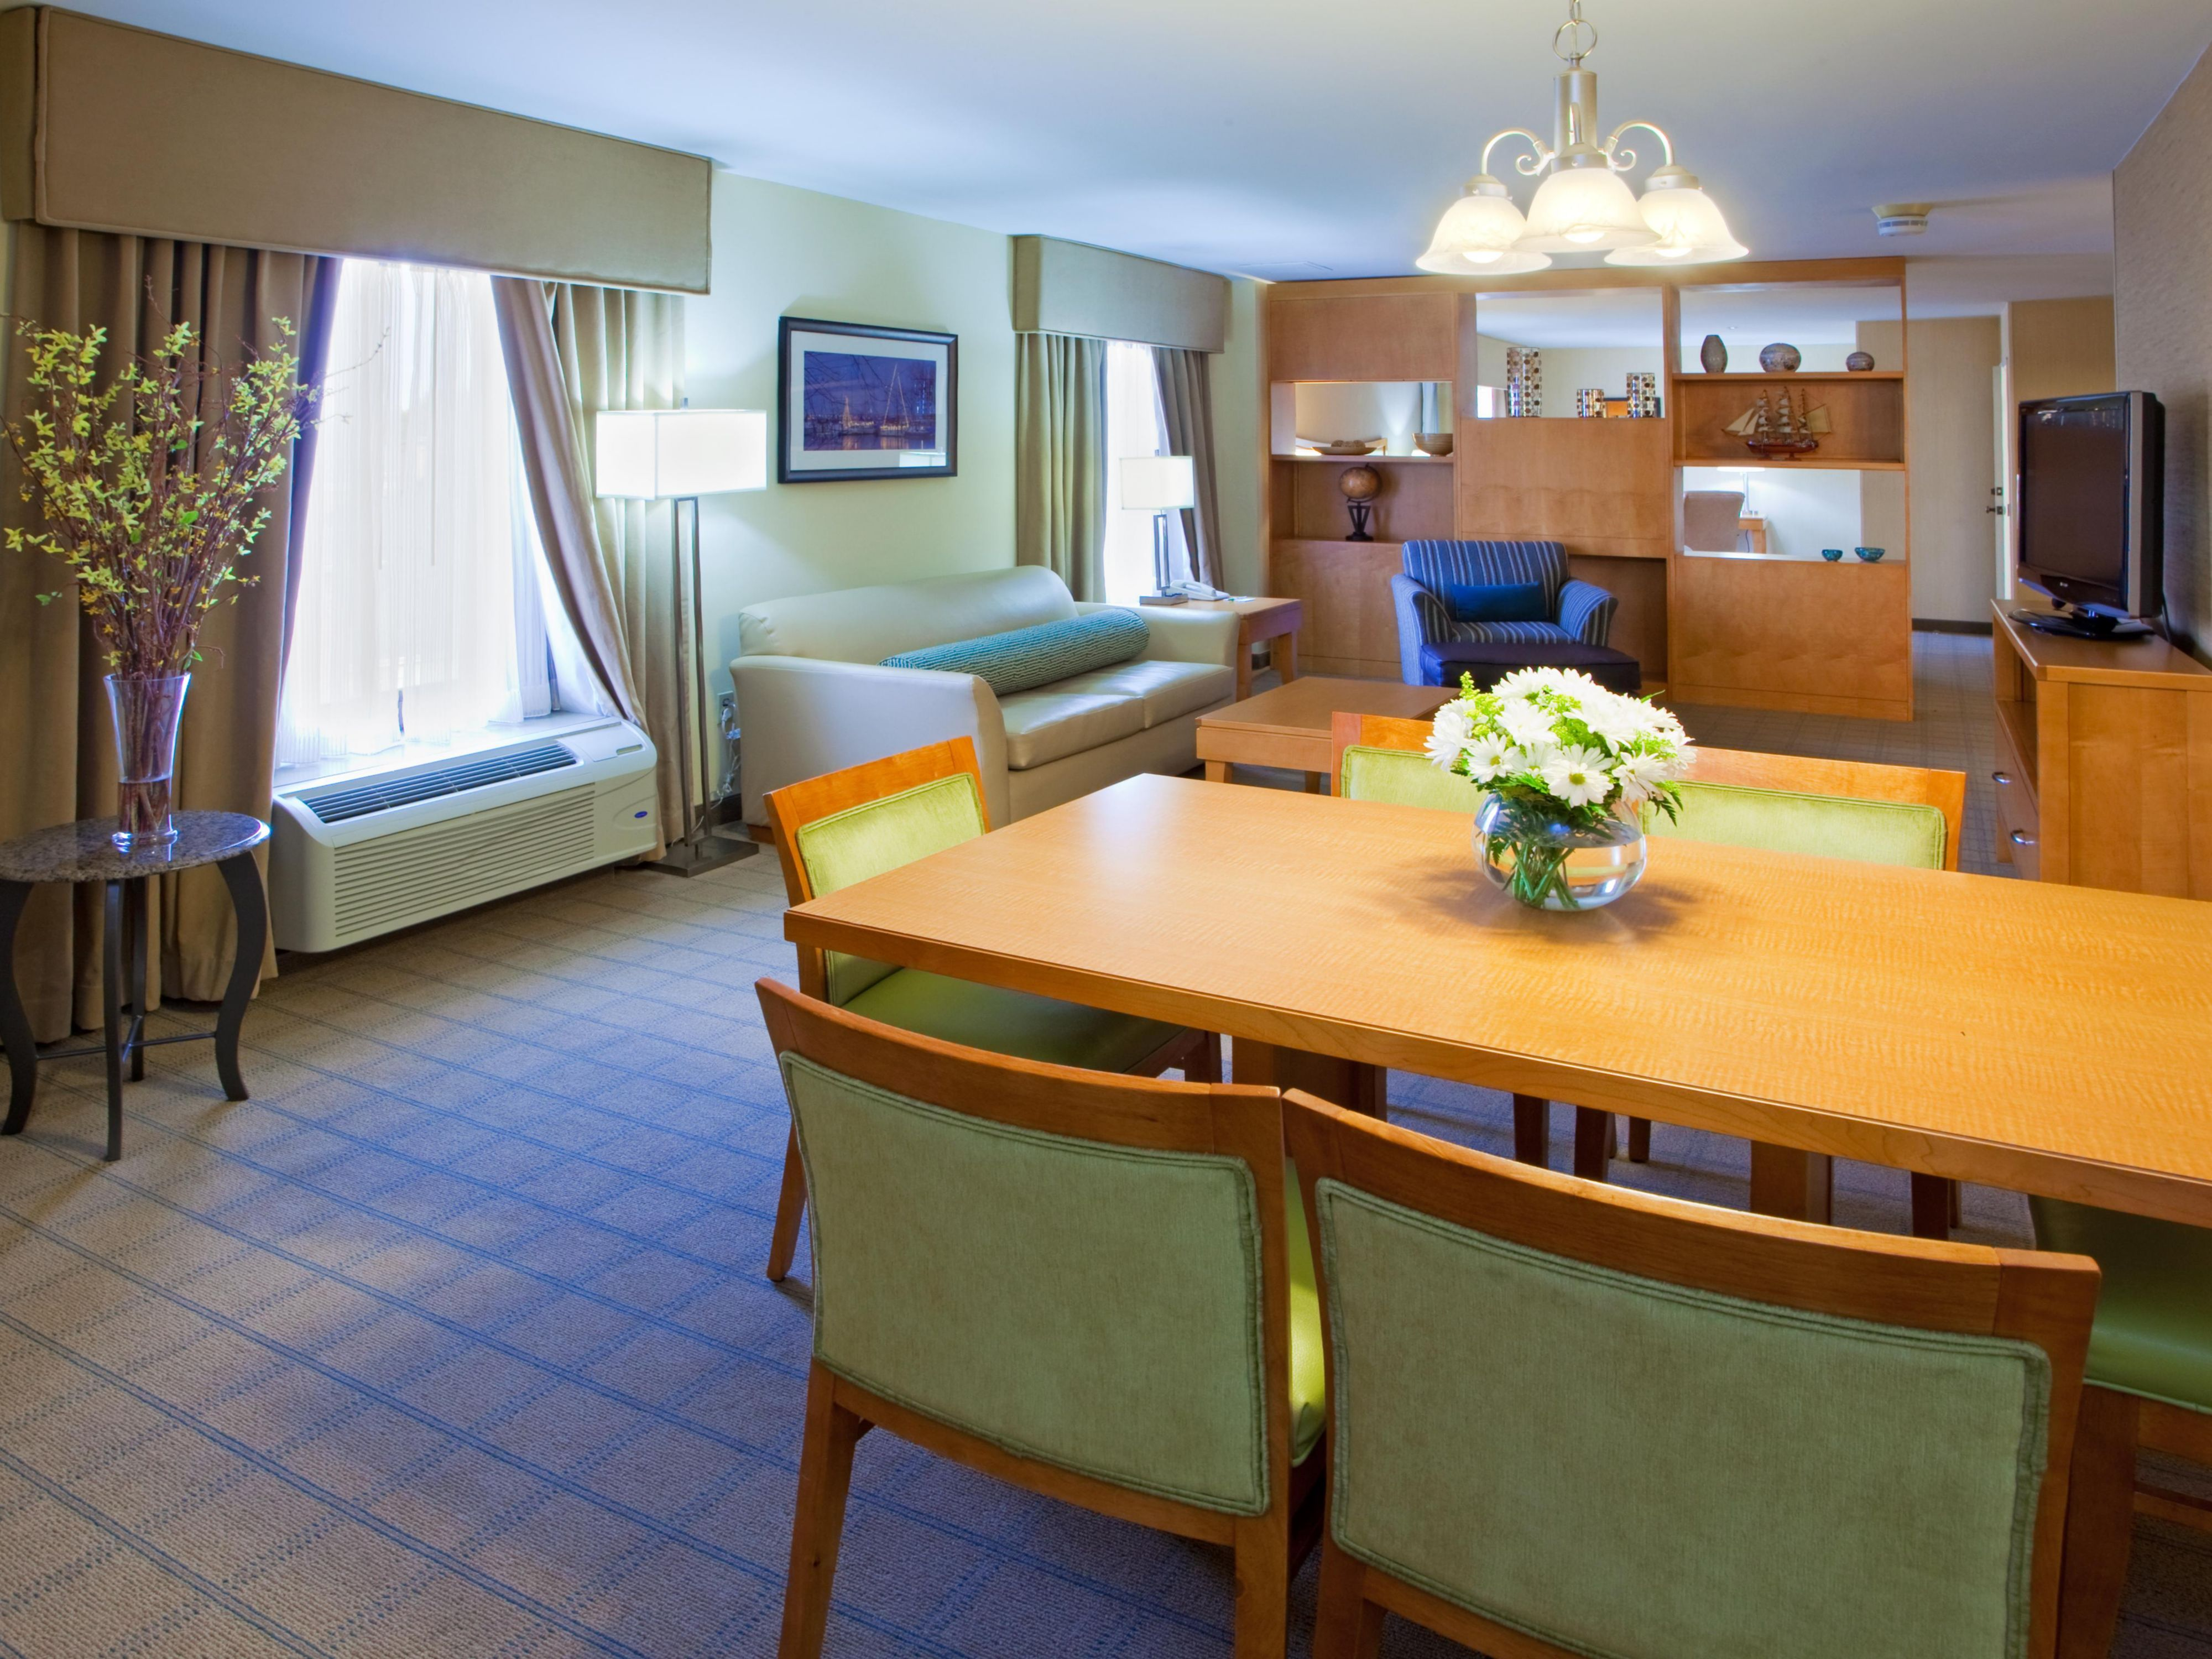 Presidential Suite Includes Room For Entertaining & Fun